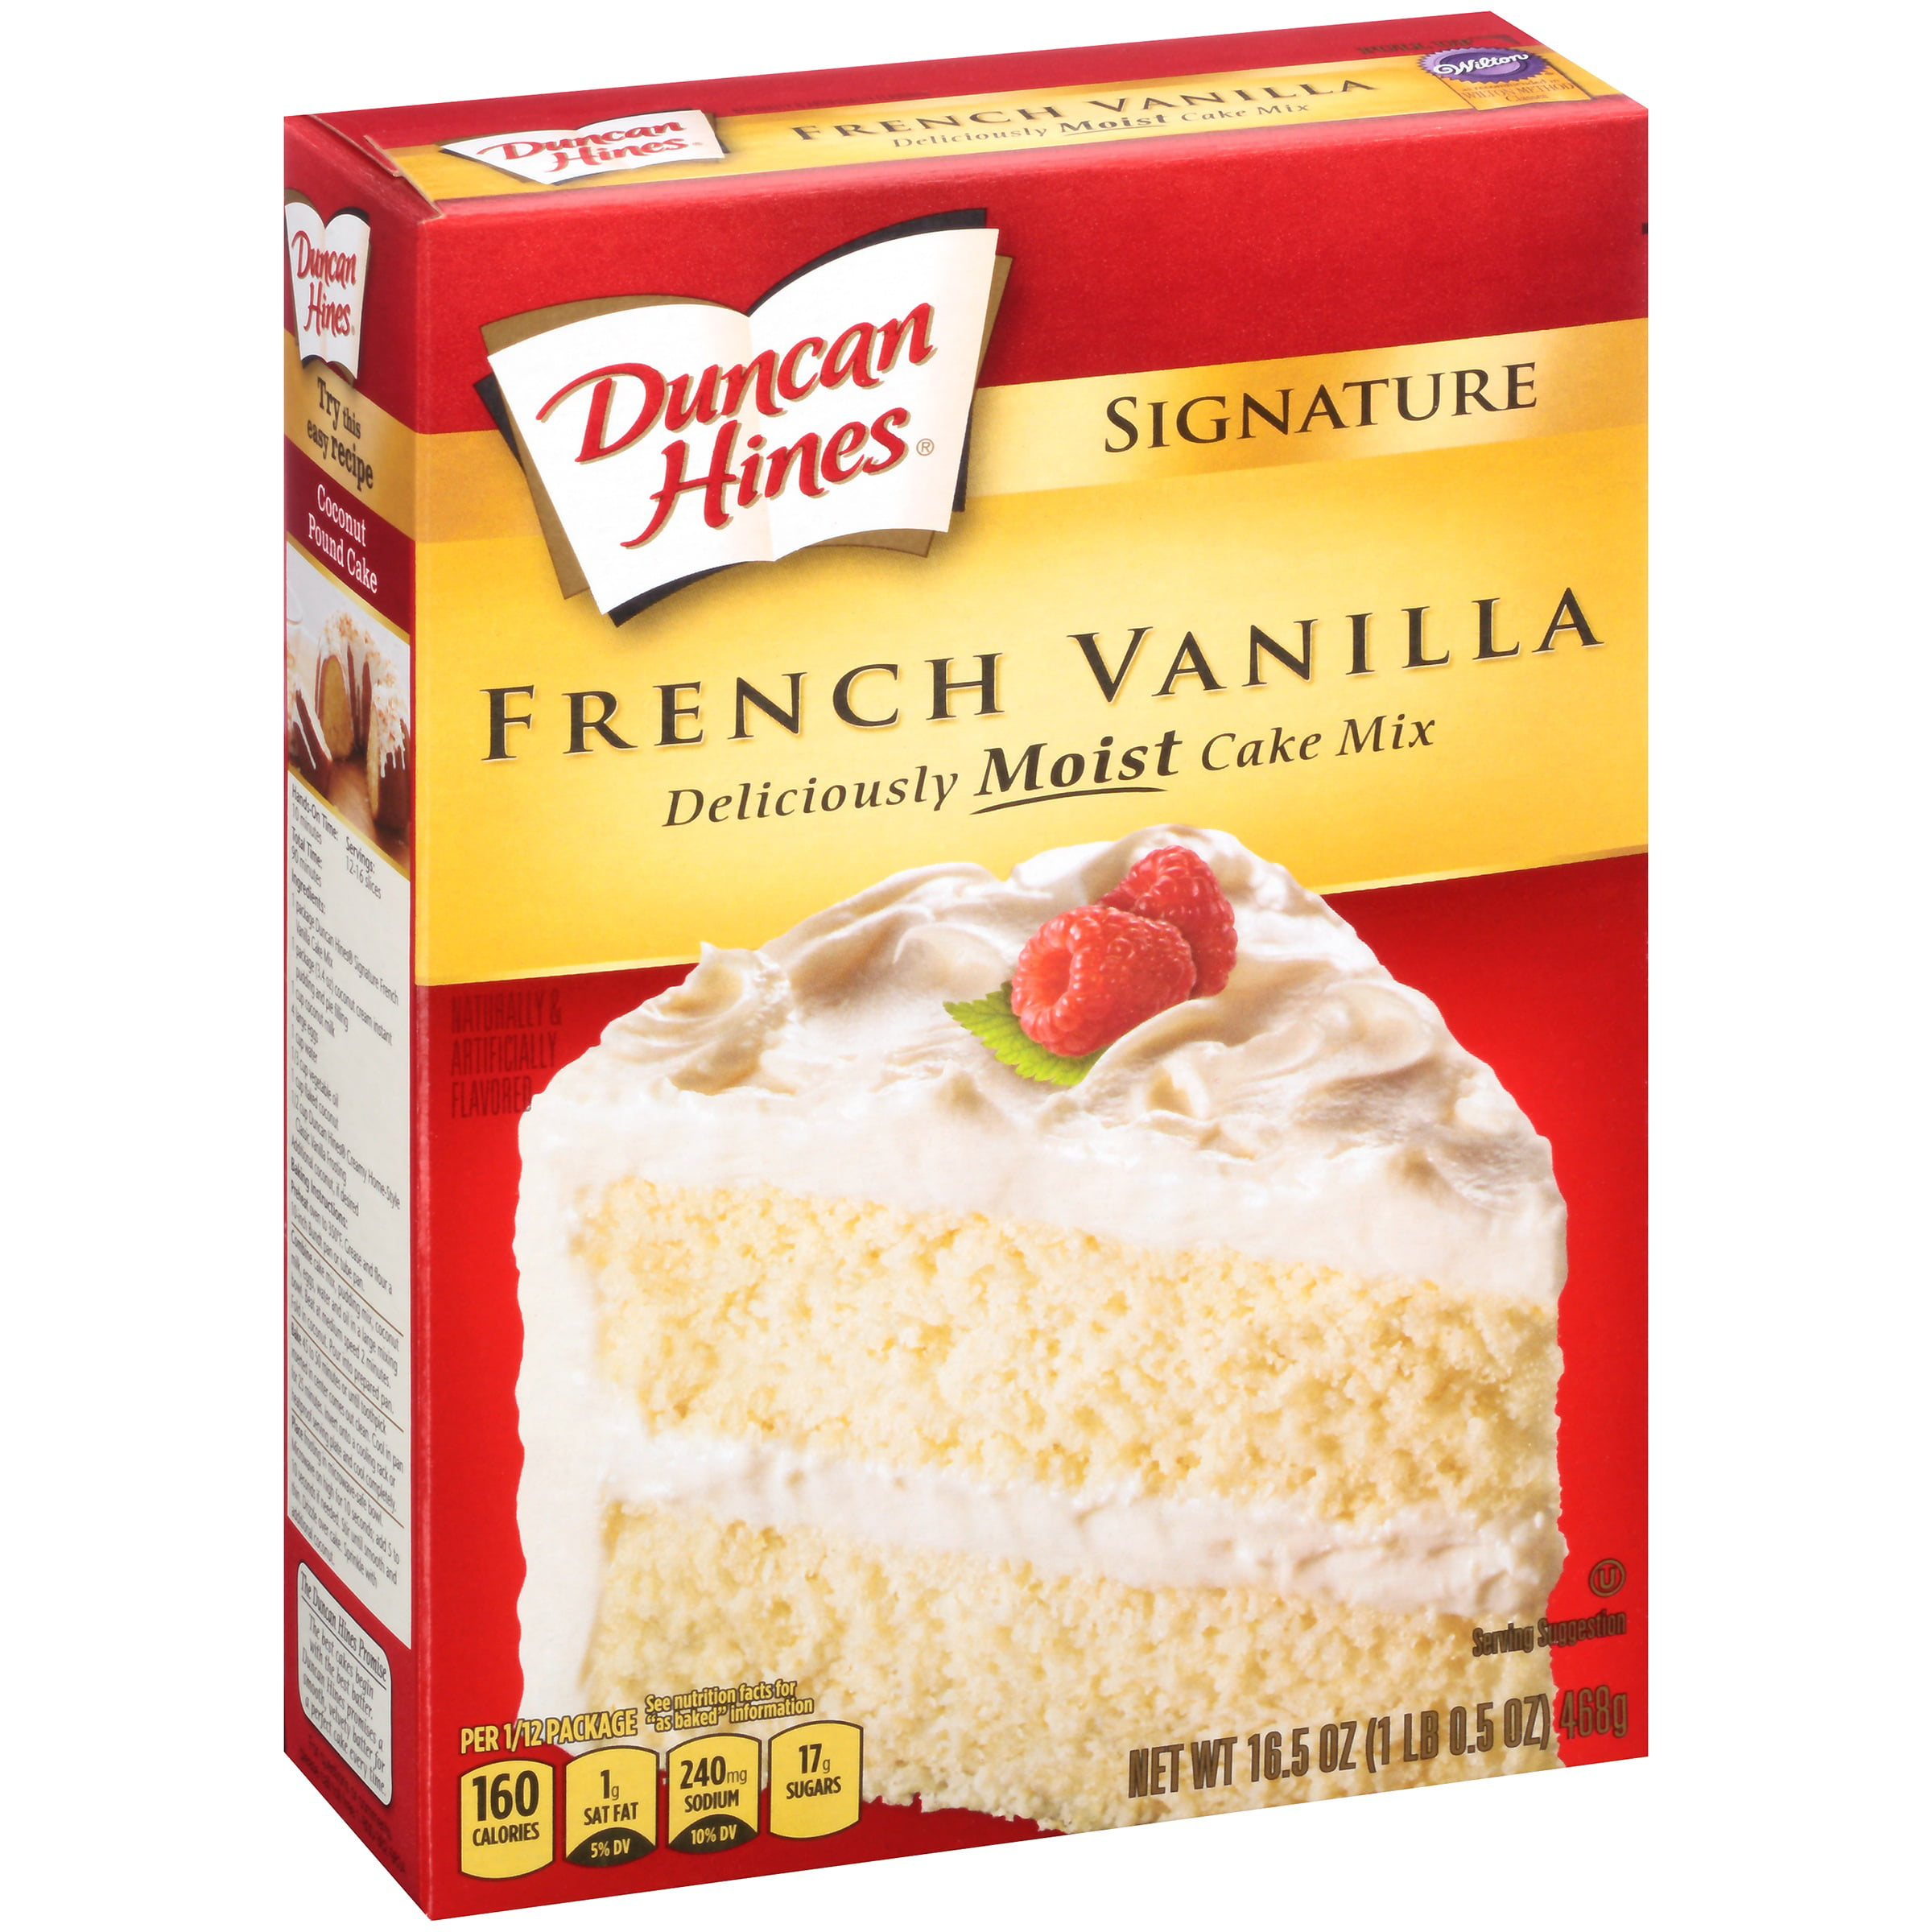 Duncan Hines Signature French Vanilla Deliciously Moist Cake Mix, 16.5 oz by Pinnacle Foods Group LLC